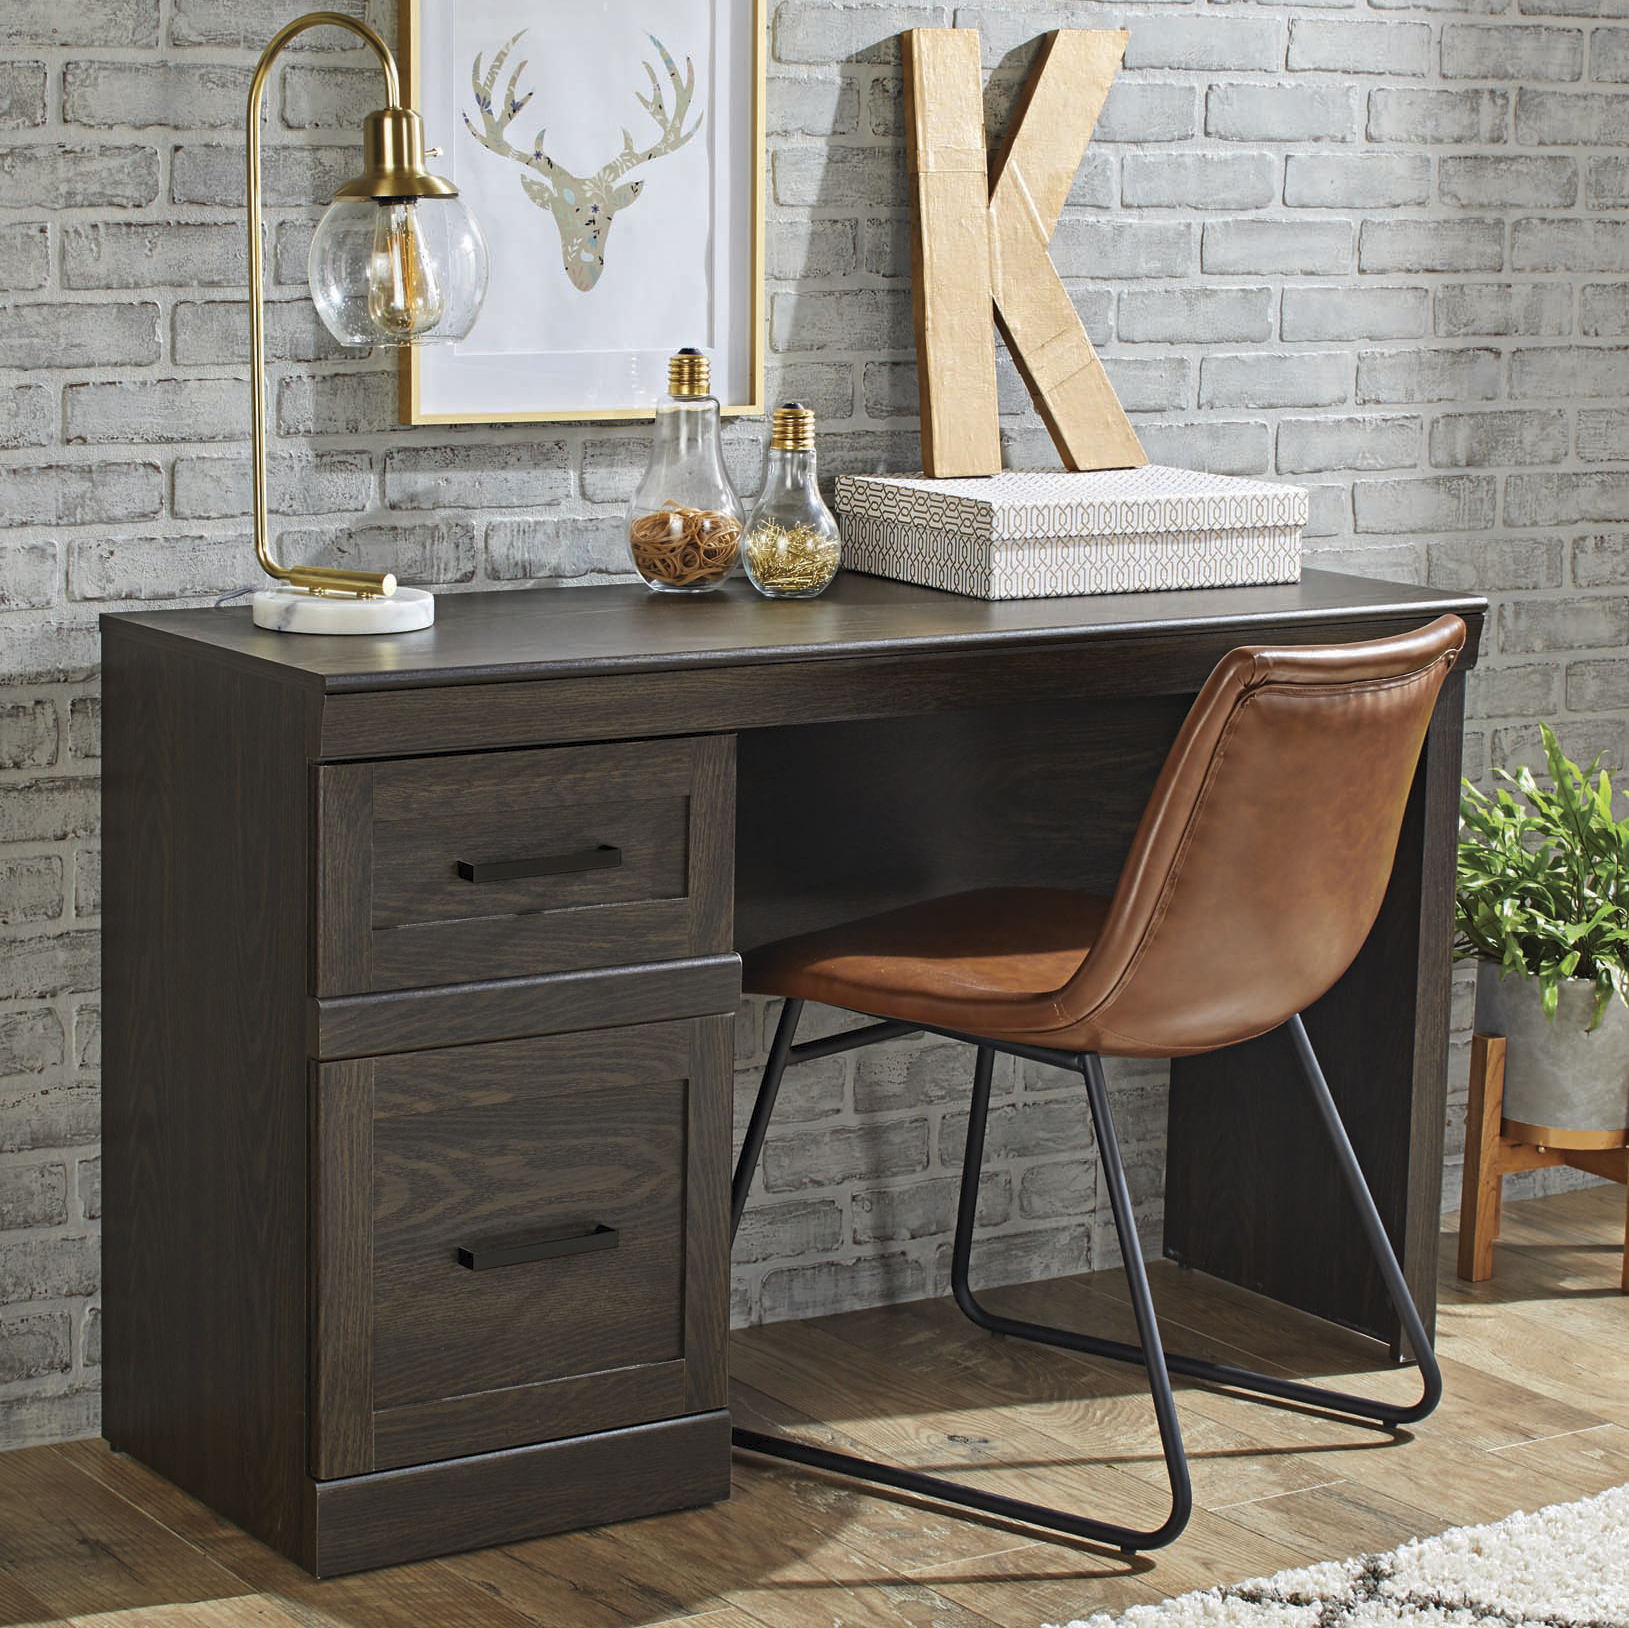 Better Homes & Gardens Glendale Transitional Desk, Dark Oak Finish